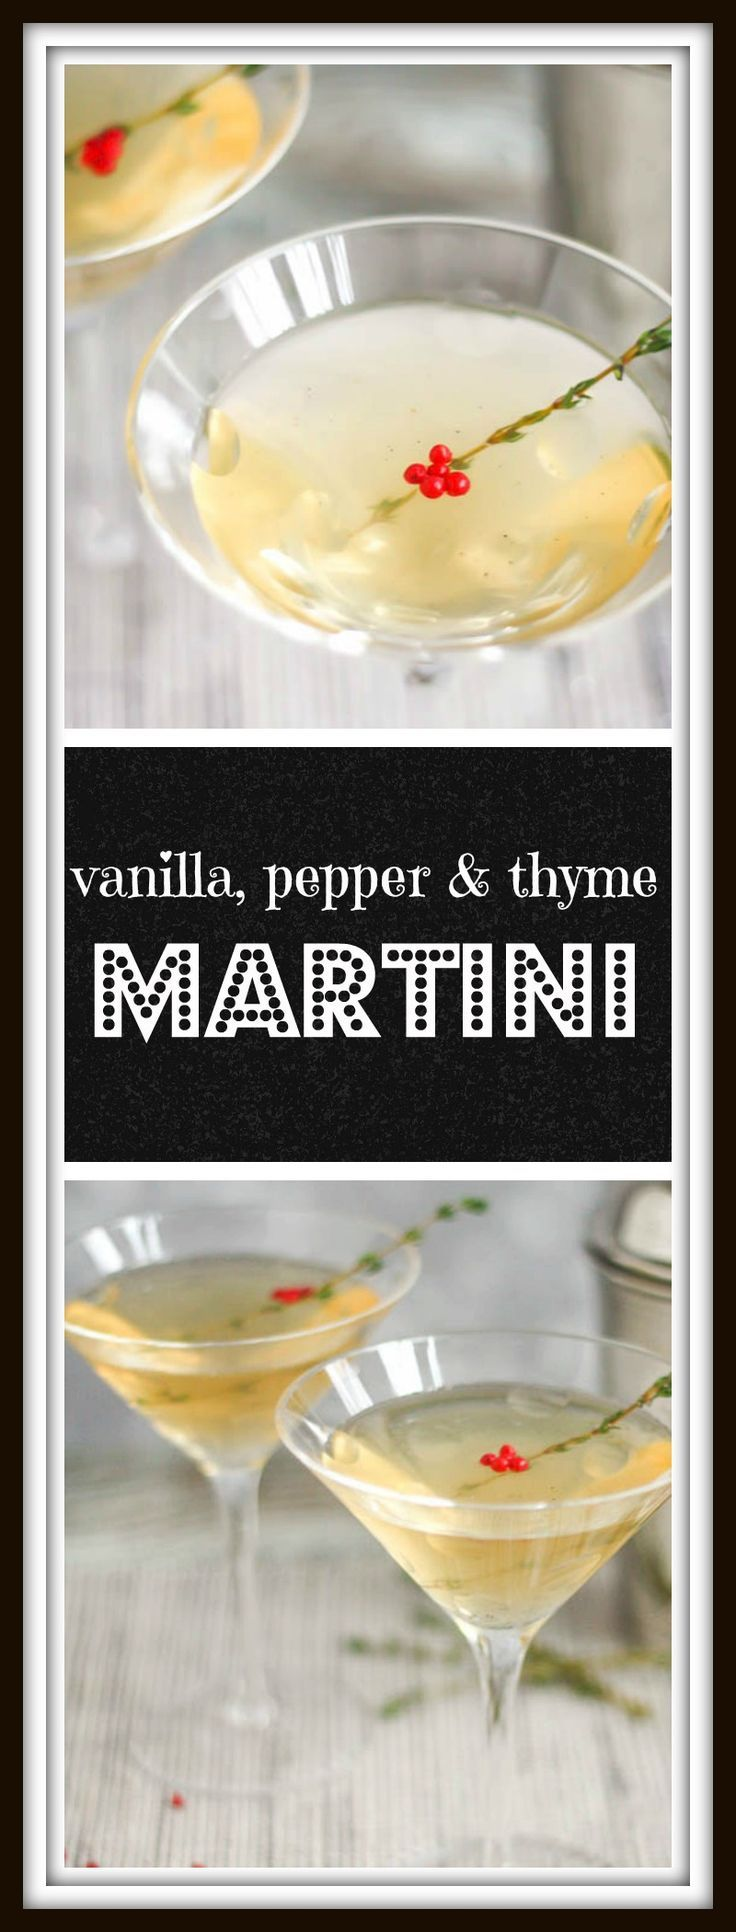 Vanilla, pepper and thyme martini - a little sweetness balanced by peppery herbaceous notes in a twist on the classic martini.